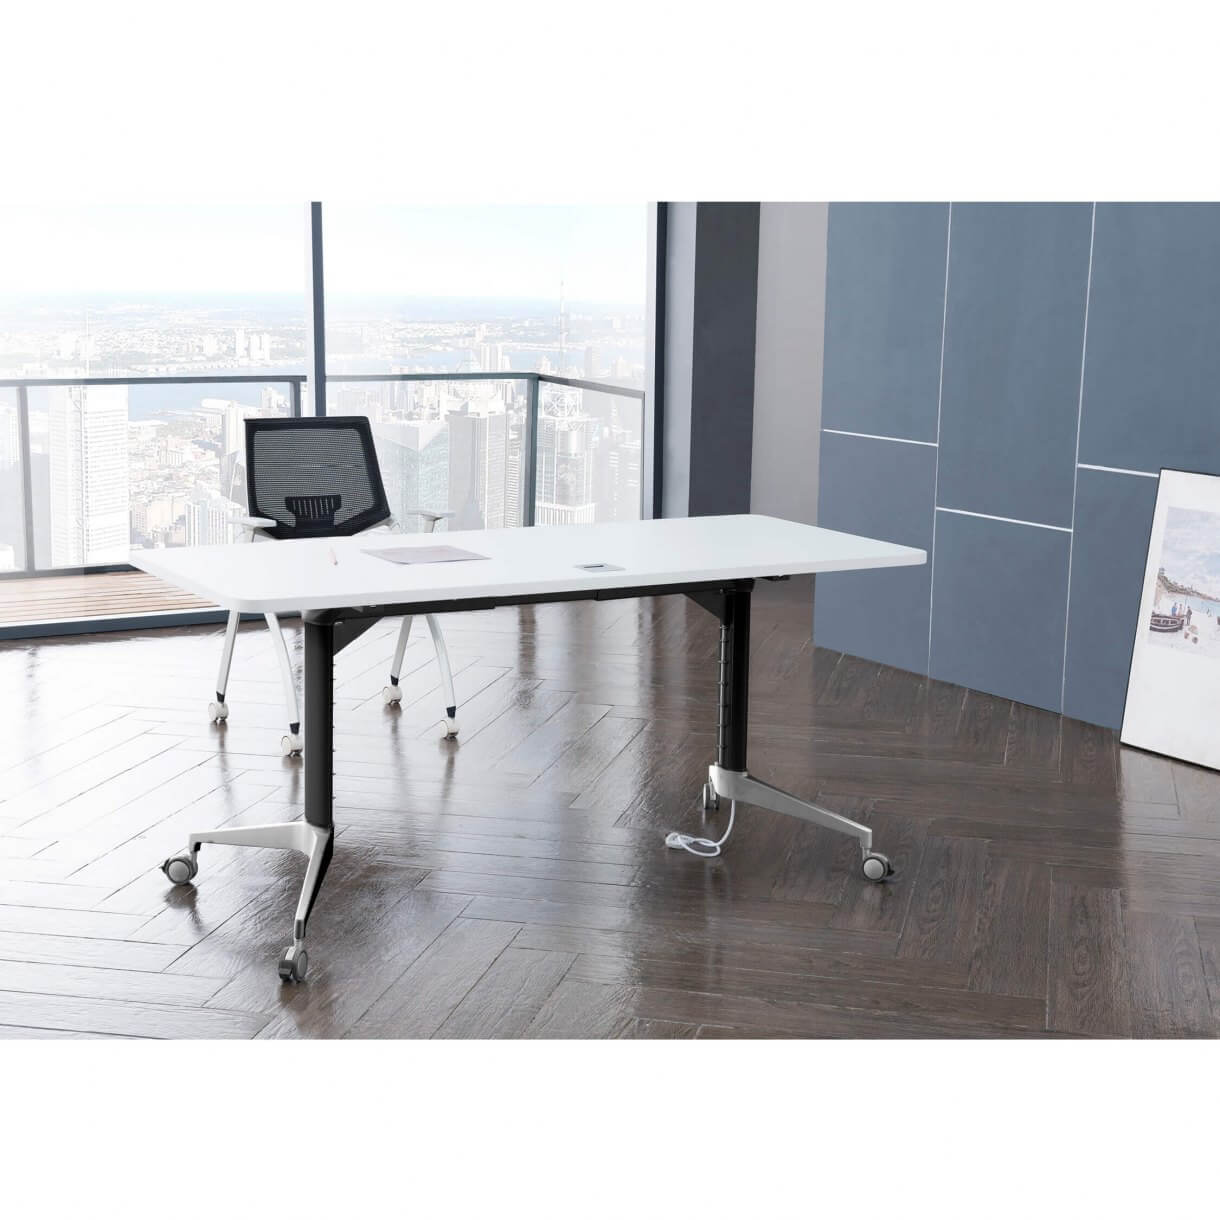 Seminar Table Placement for an Effective Work Space at Home - Comfort Furniture